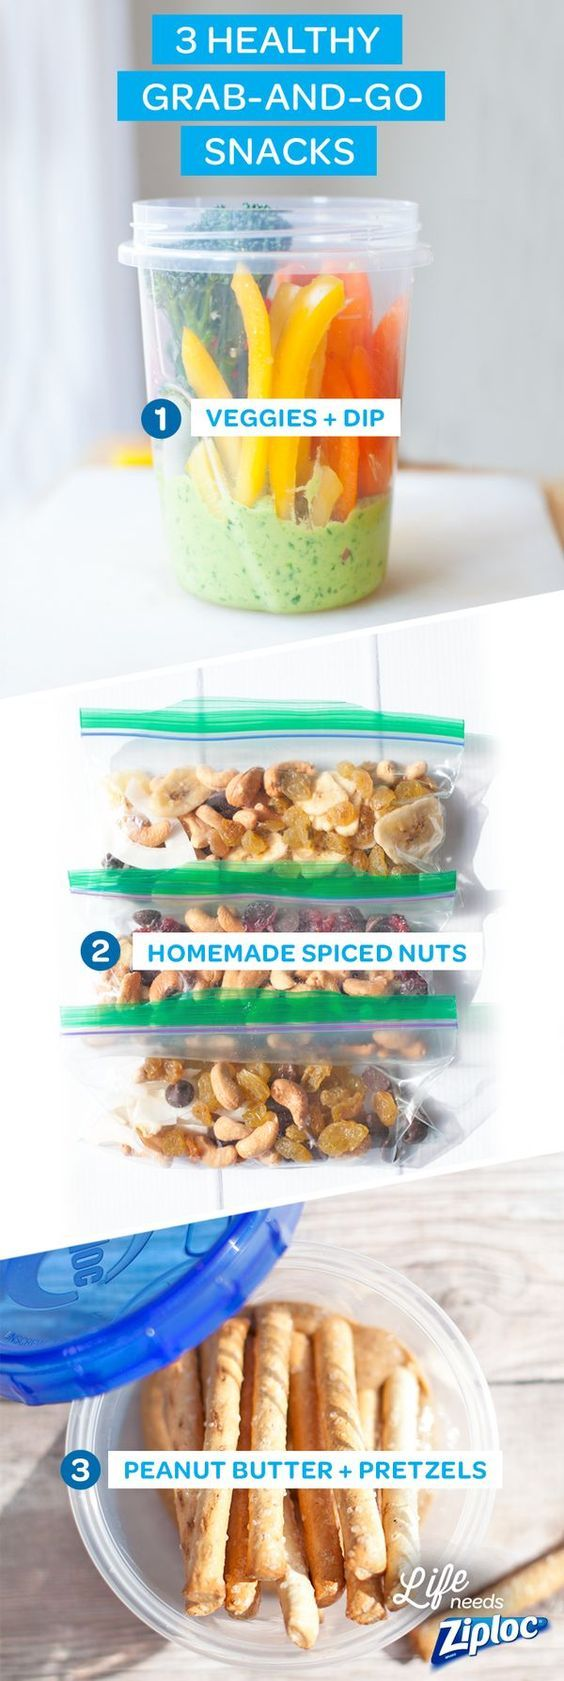 Fast food doesn't have to be bad food. Stay prepared for life's hungry, hurried moments with quick and healthy on-the- go snacks like veggies and dip, mixed nuts, and peanut butter with pretzel sticks stored in Ziploc® brand bags and containers.